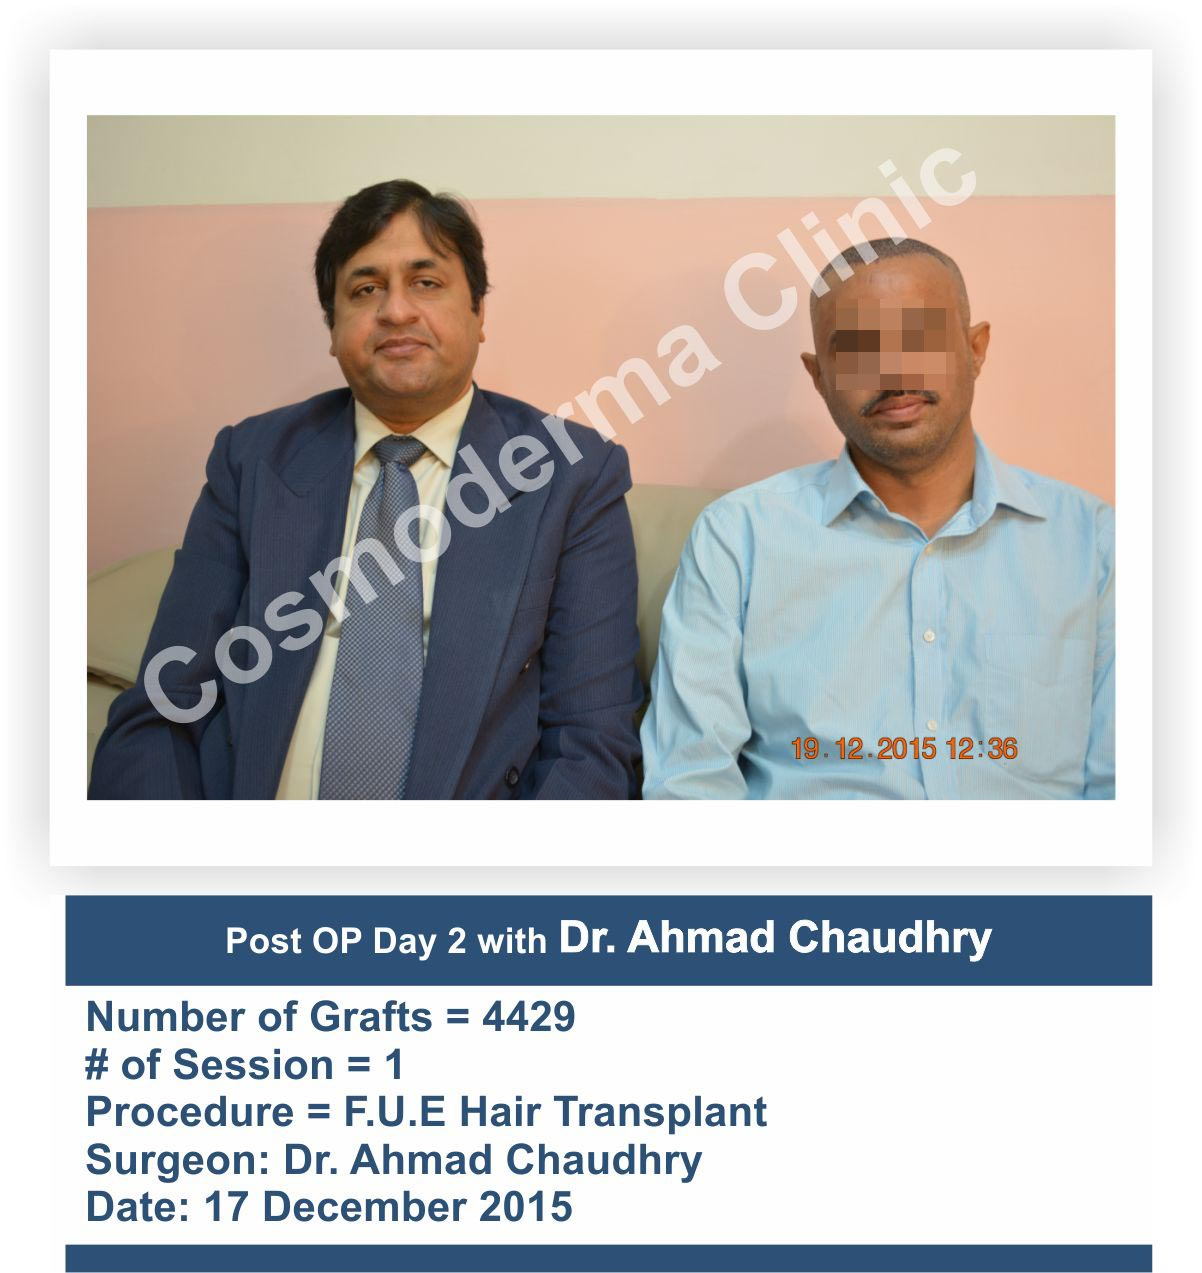 Dr.Ahmad Chaudhry -hair transplant surgeon- with patient